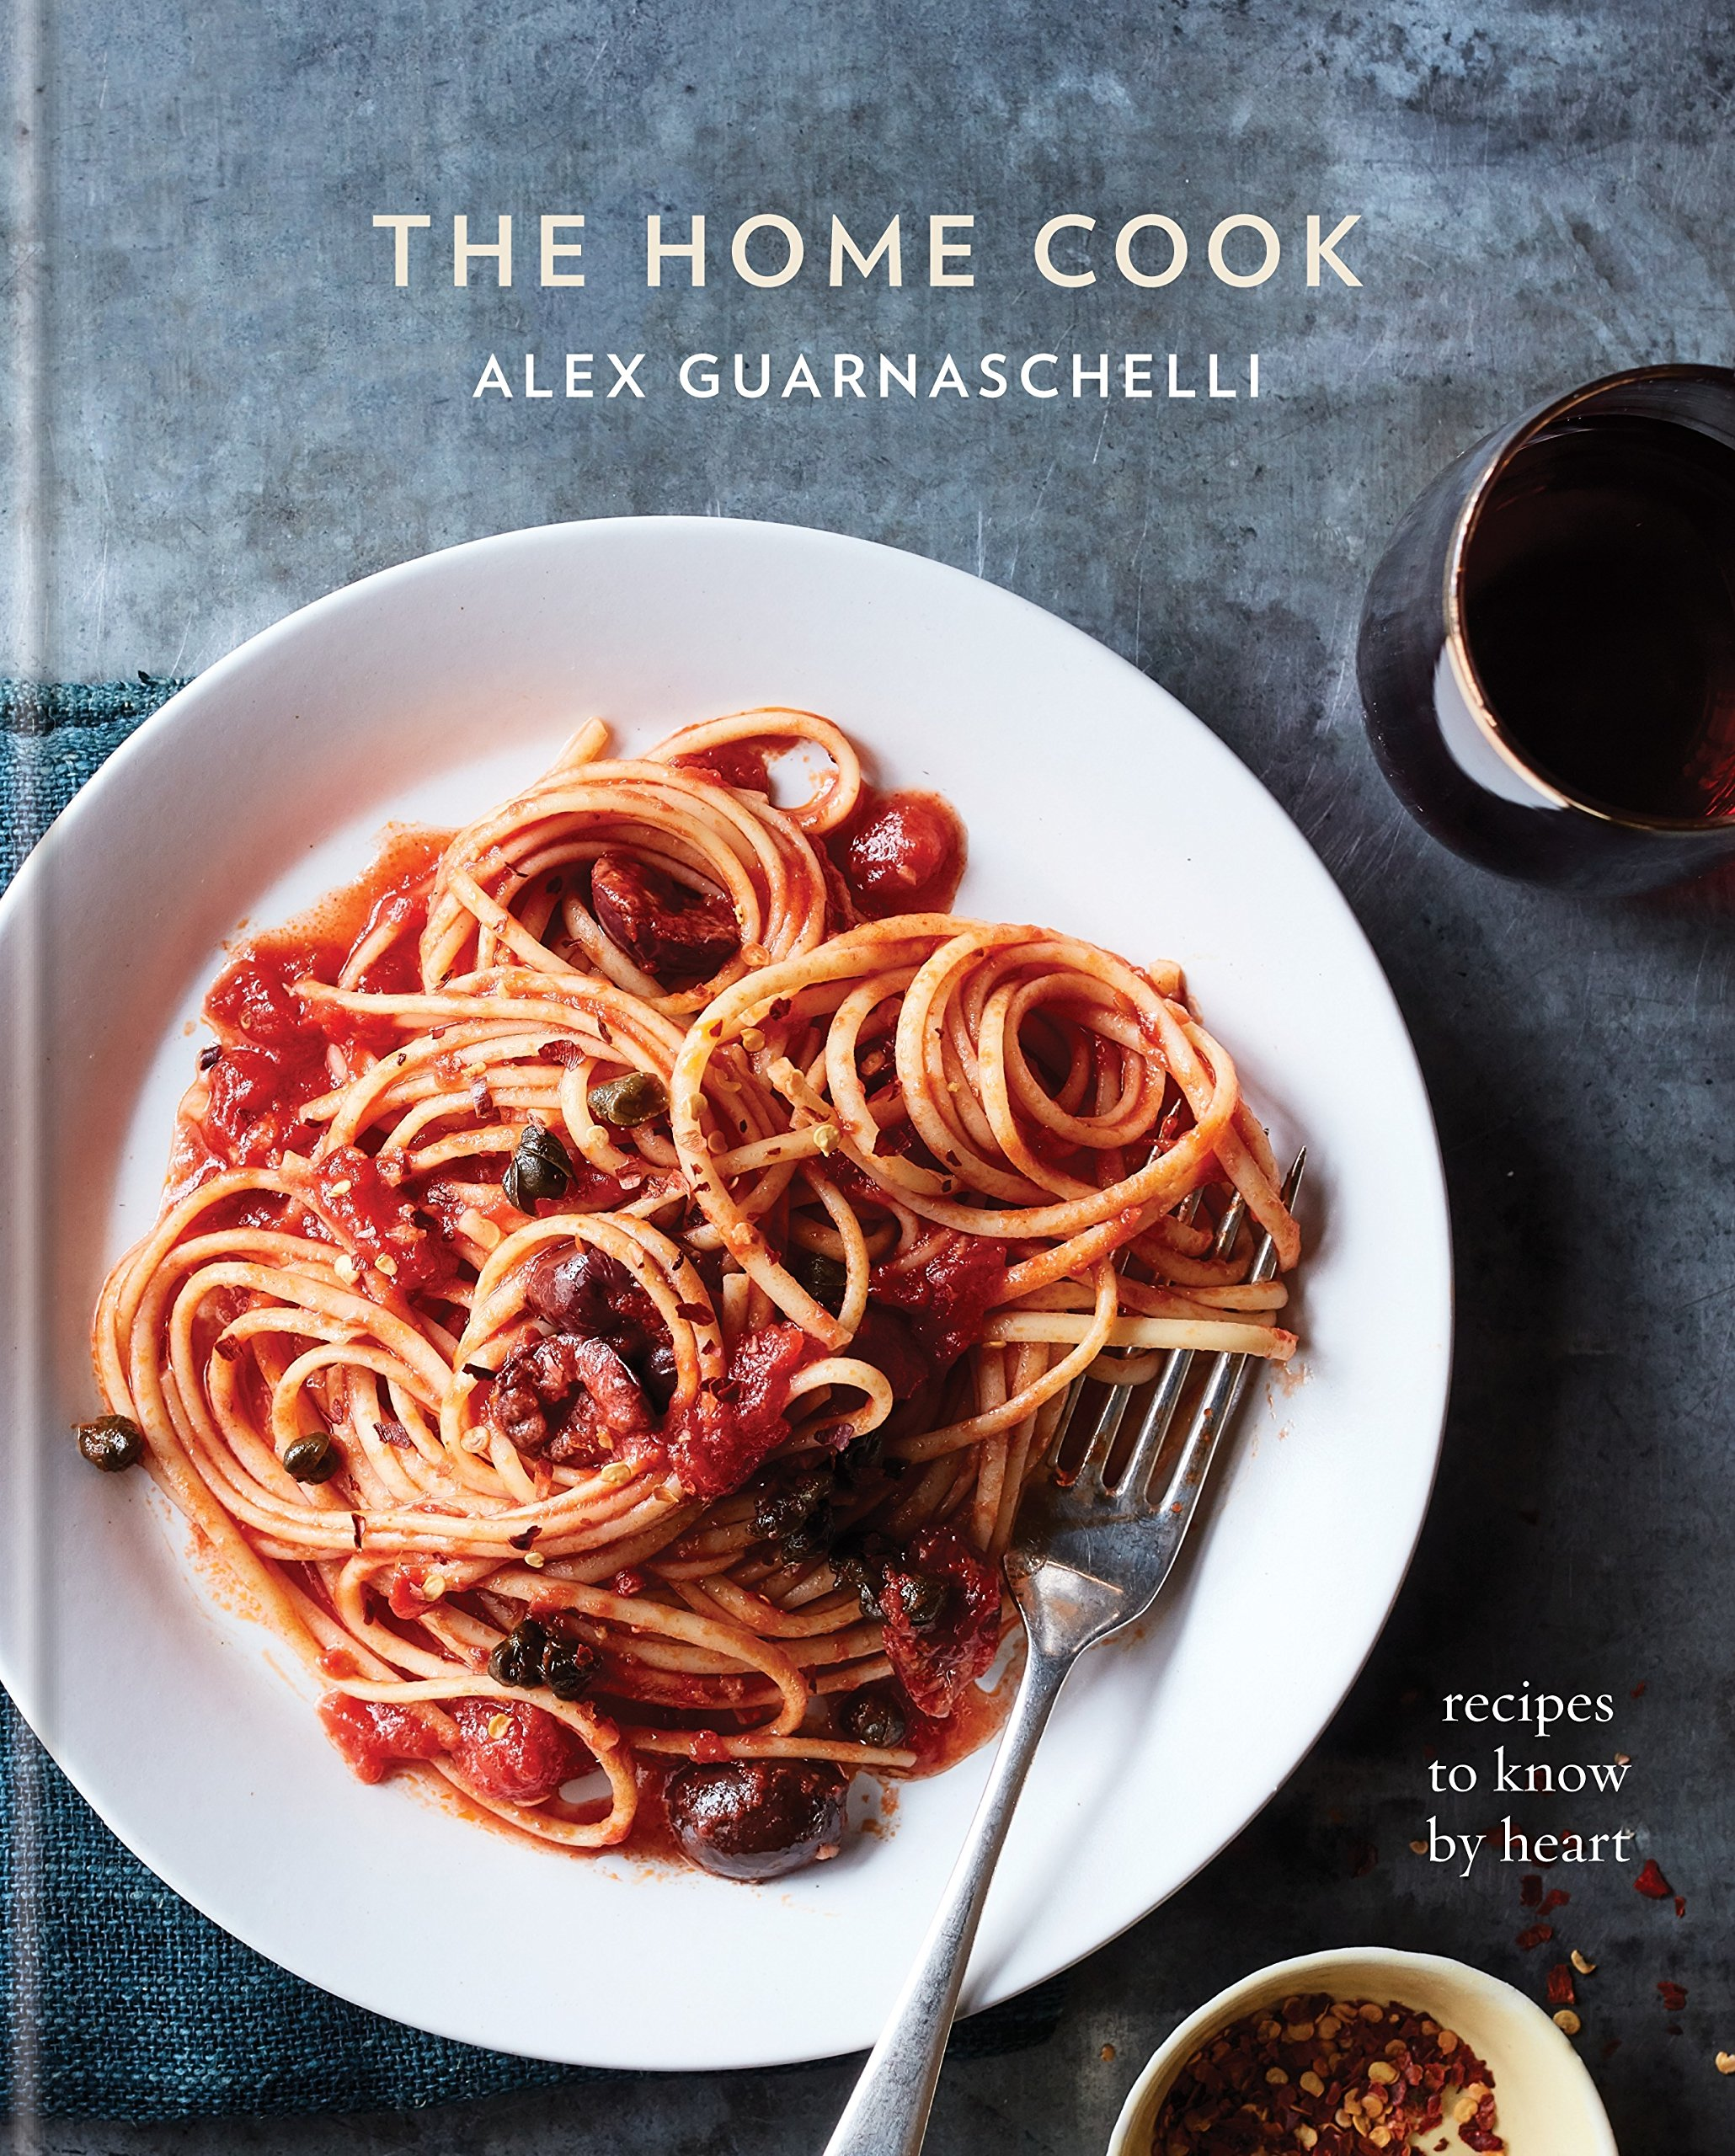 The Home Cook | Best Cookbooks for Families 2017